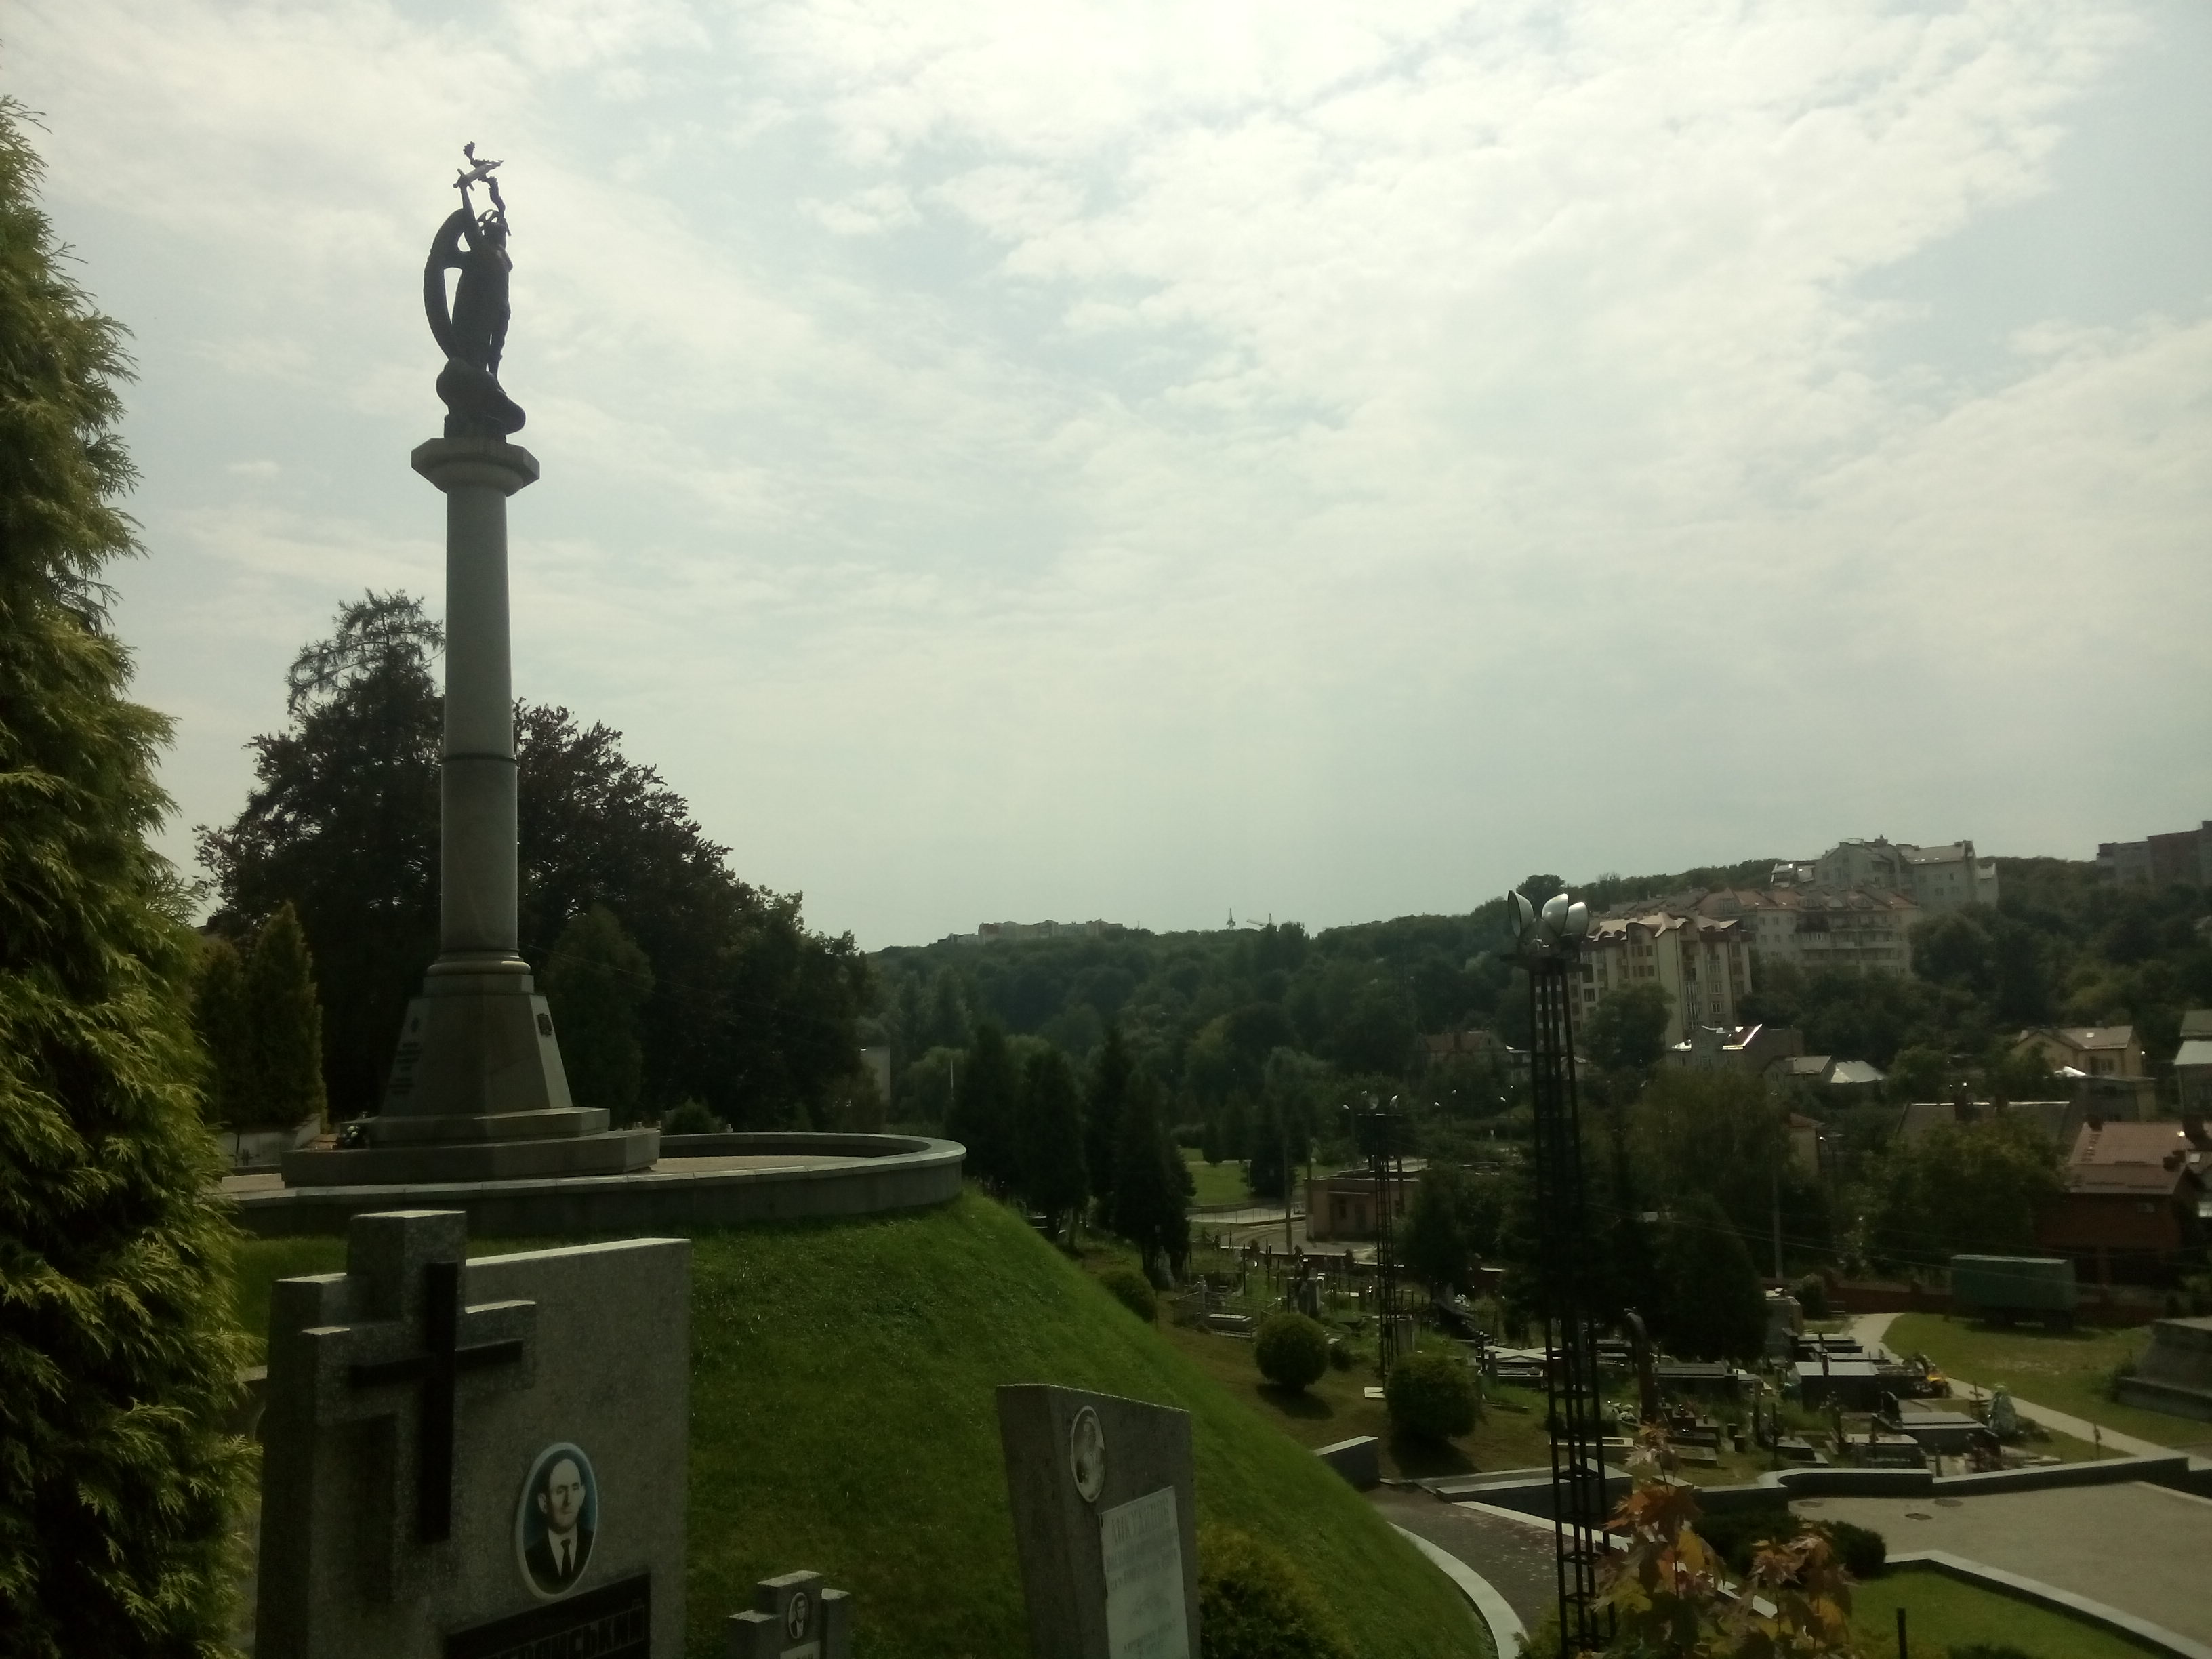 A monument on a hill to the left and grass and well maintained graves